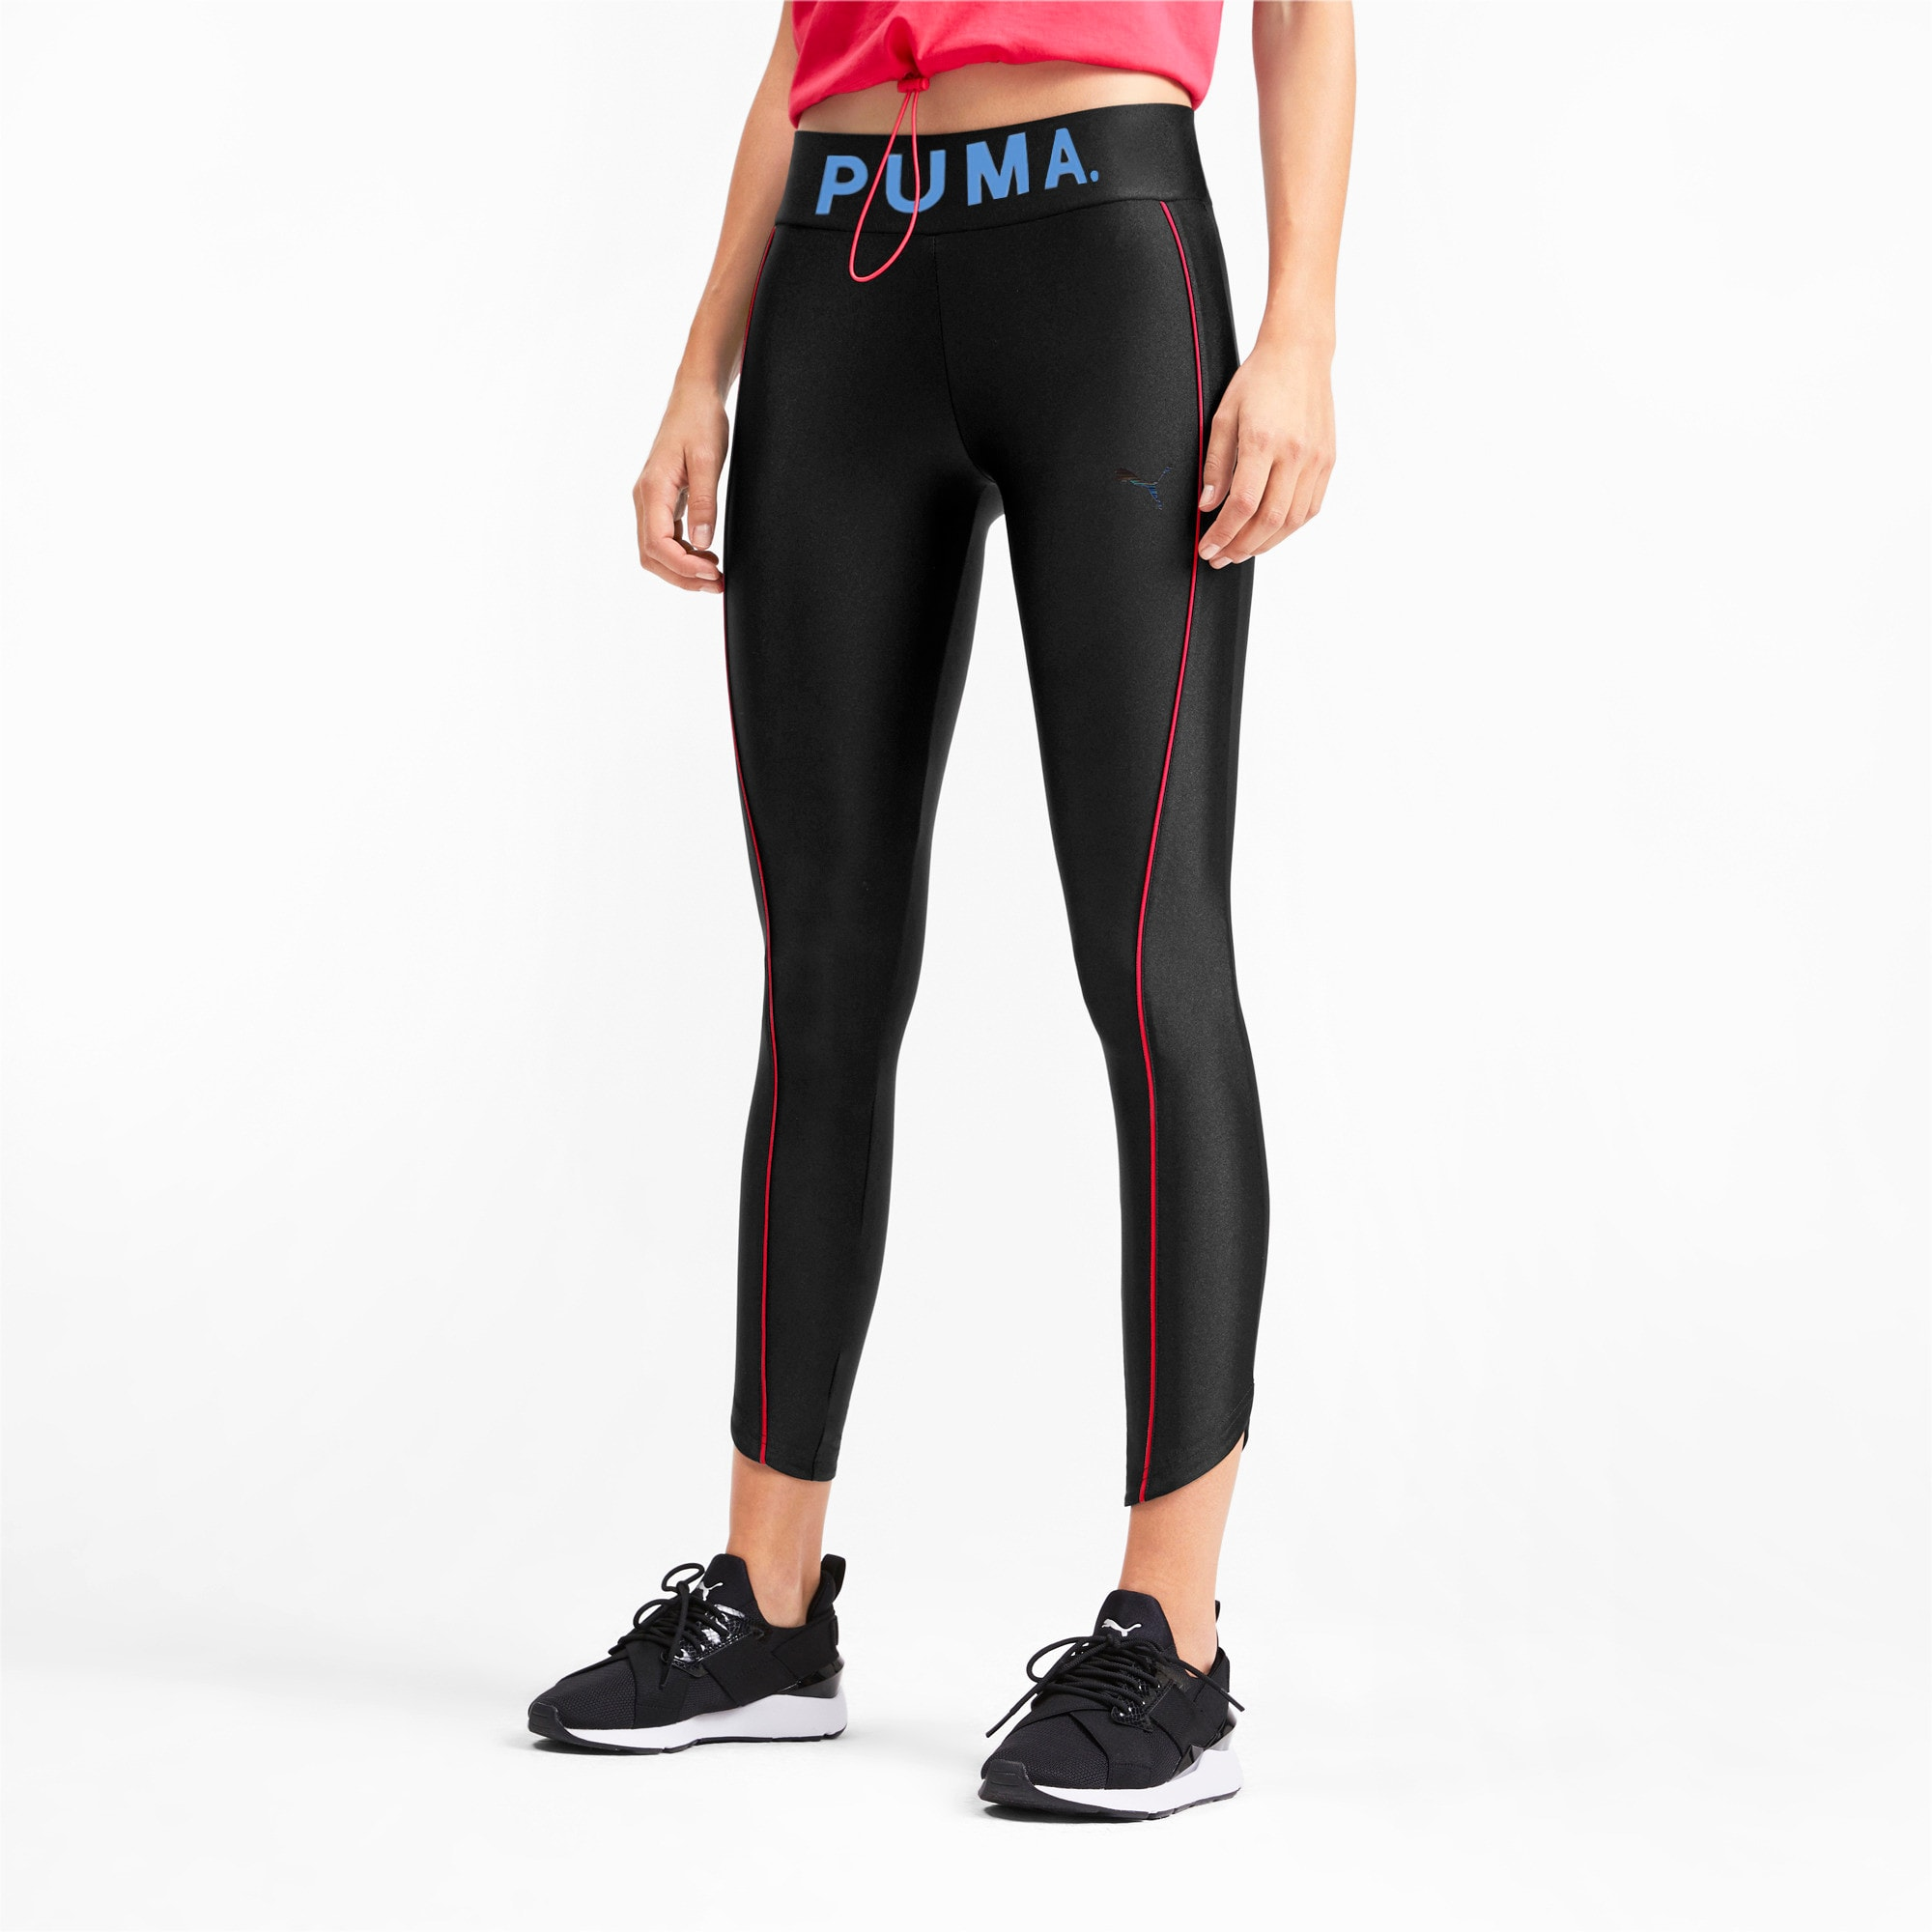 Thumbnail 2 of Chase Graphic 7/8 Women's Leggings, Puma Black, medium